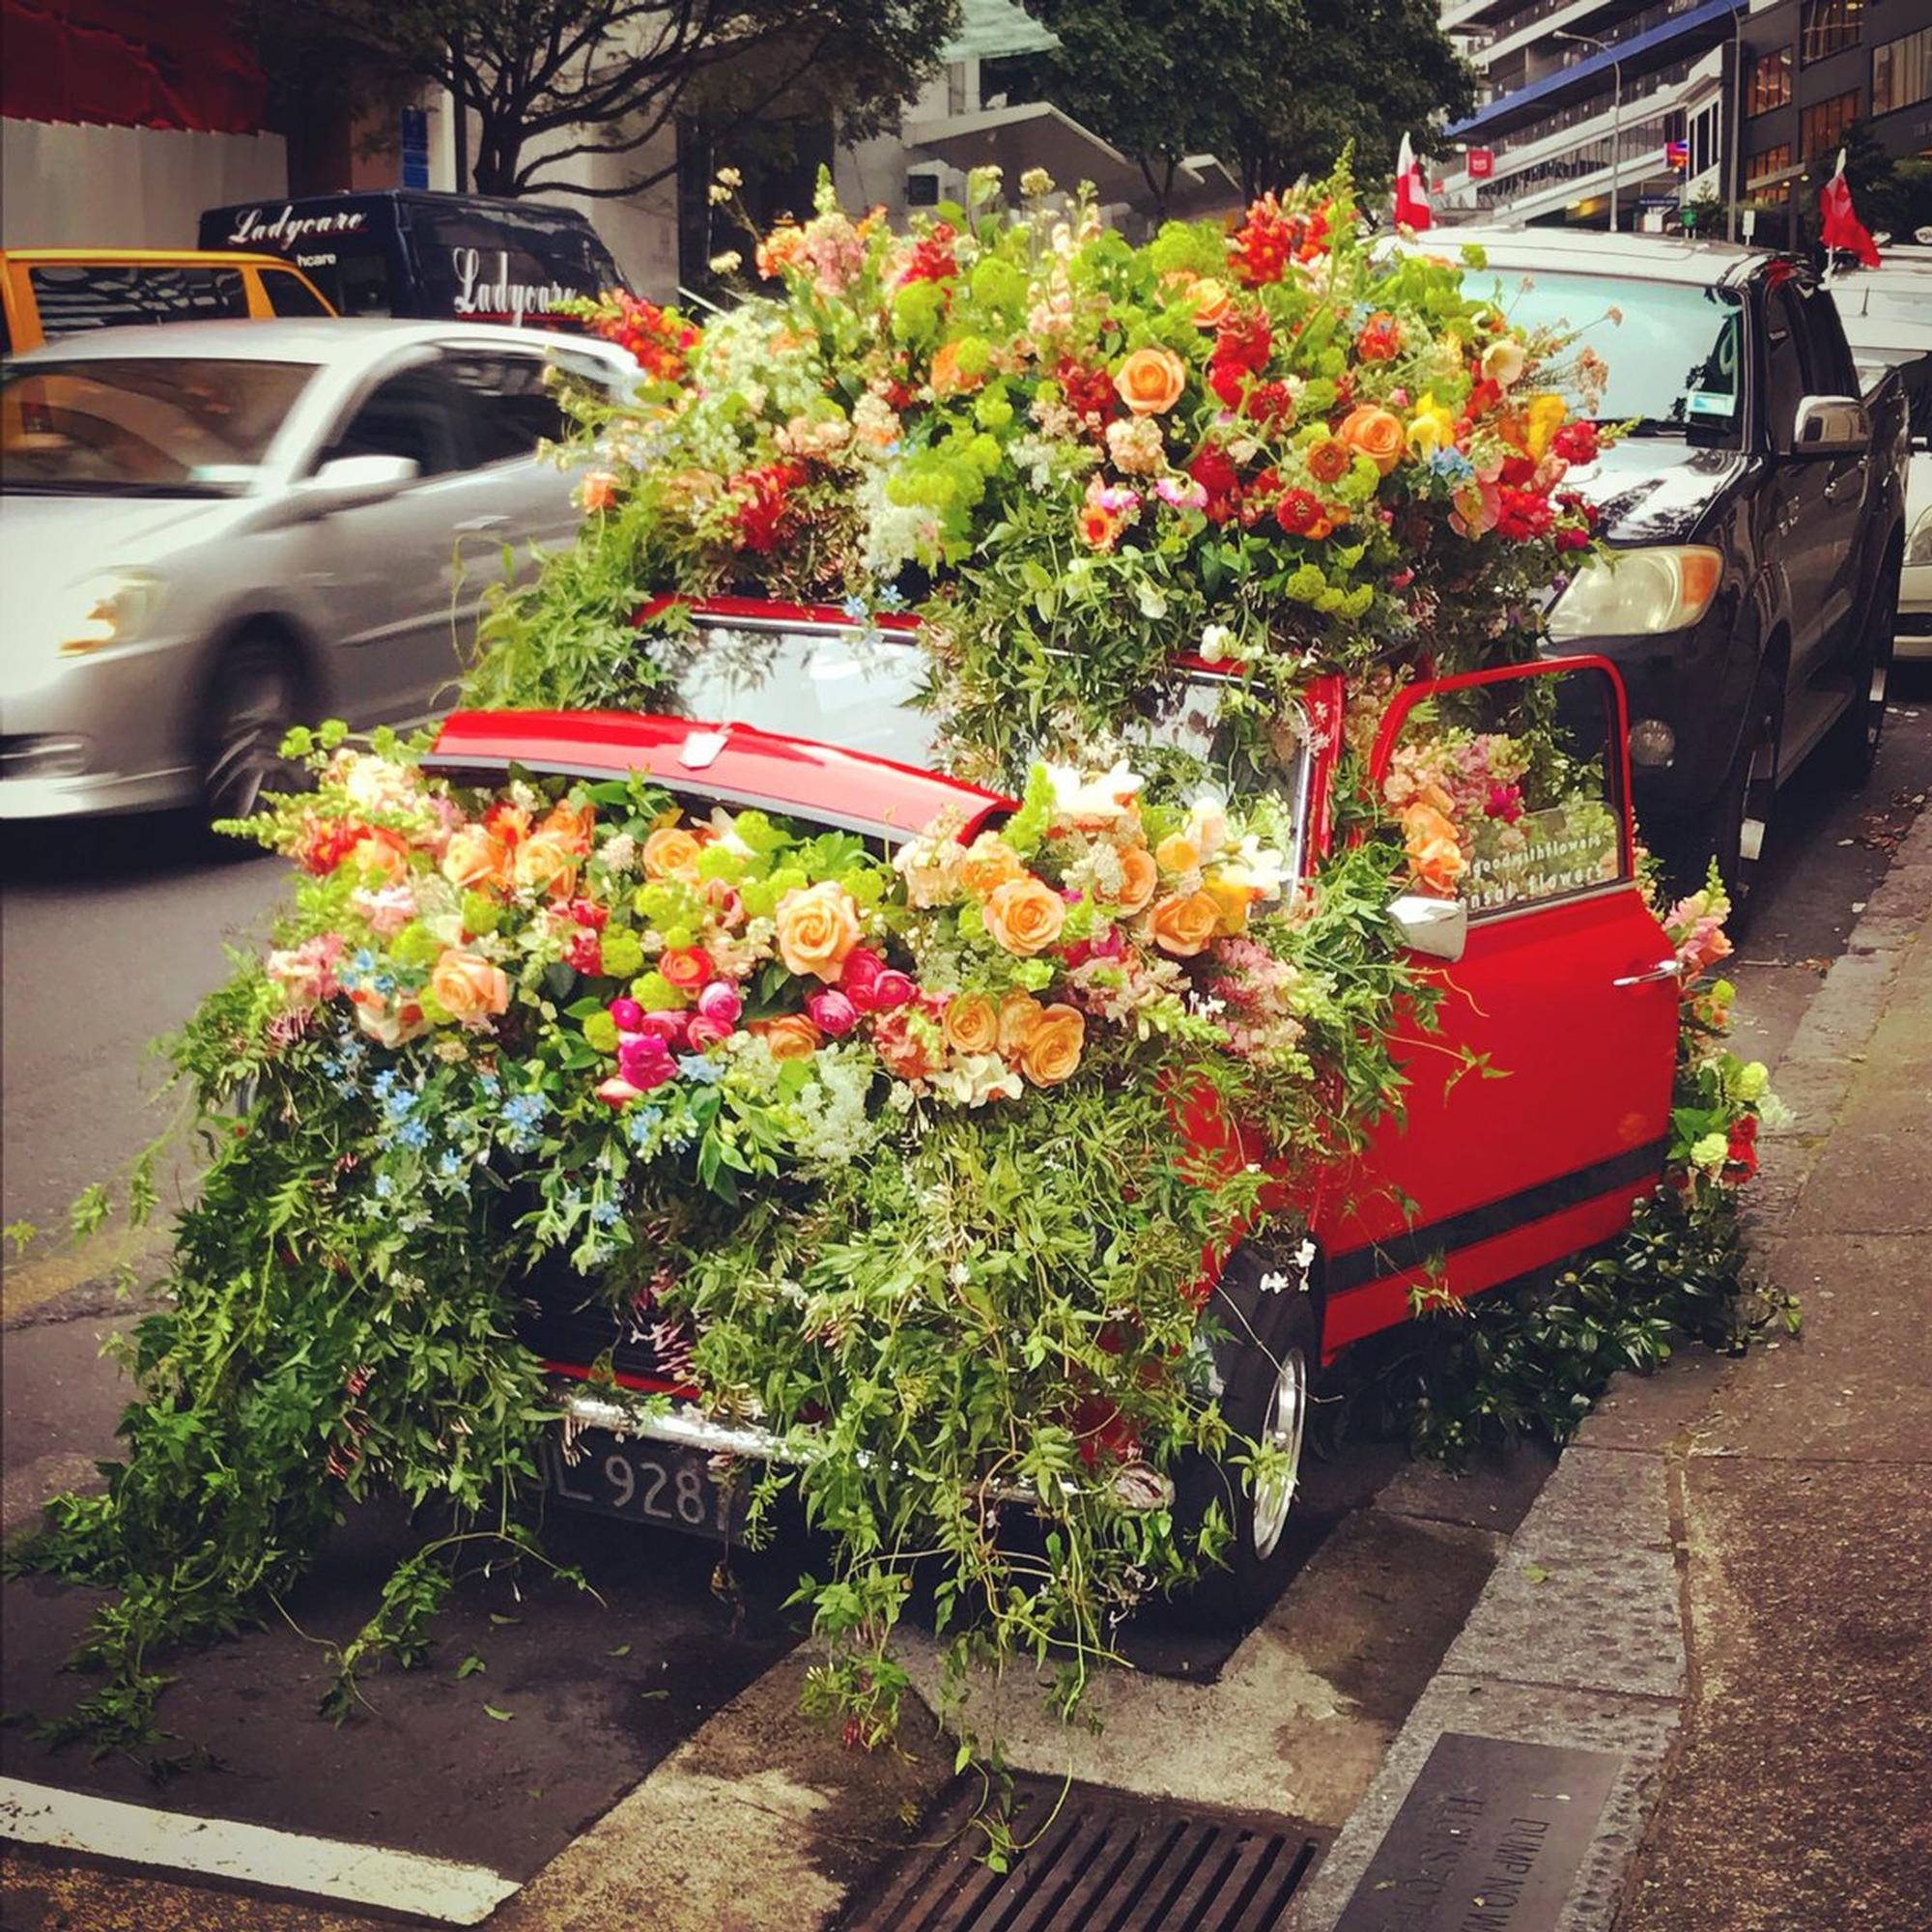 A Mini was converted into a flower garden in Auckland, New Zealand